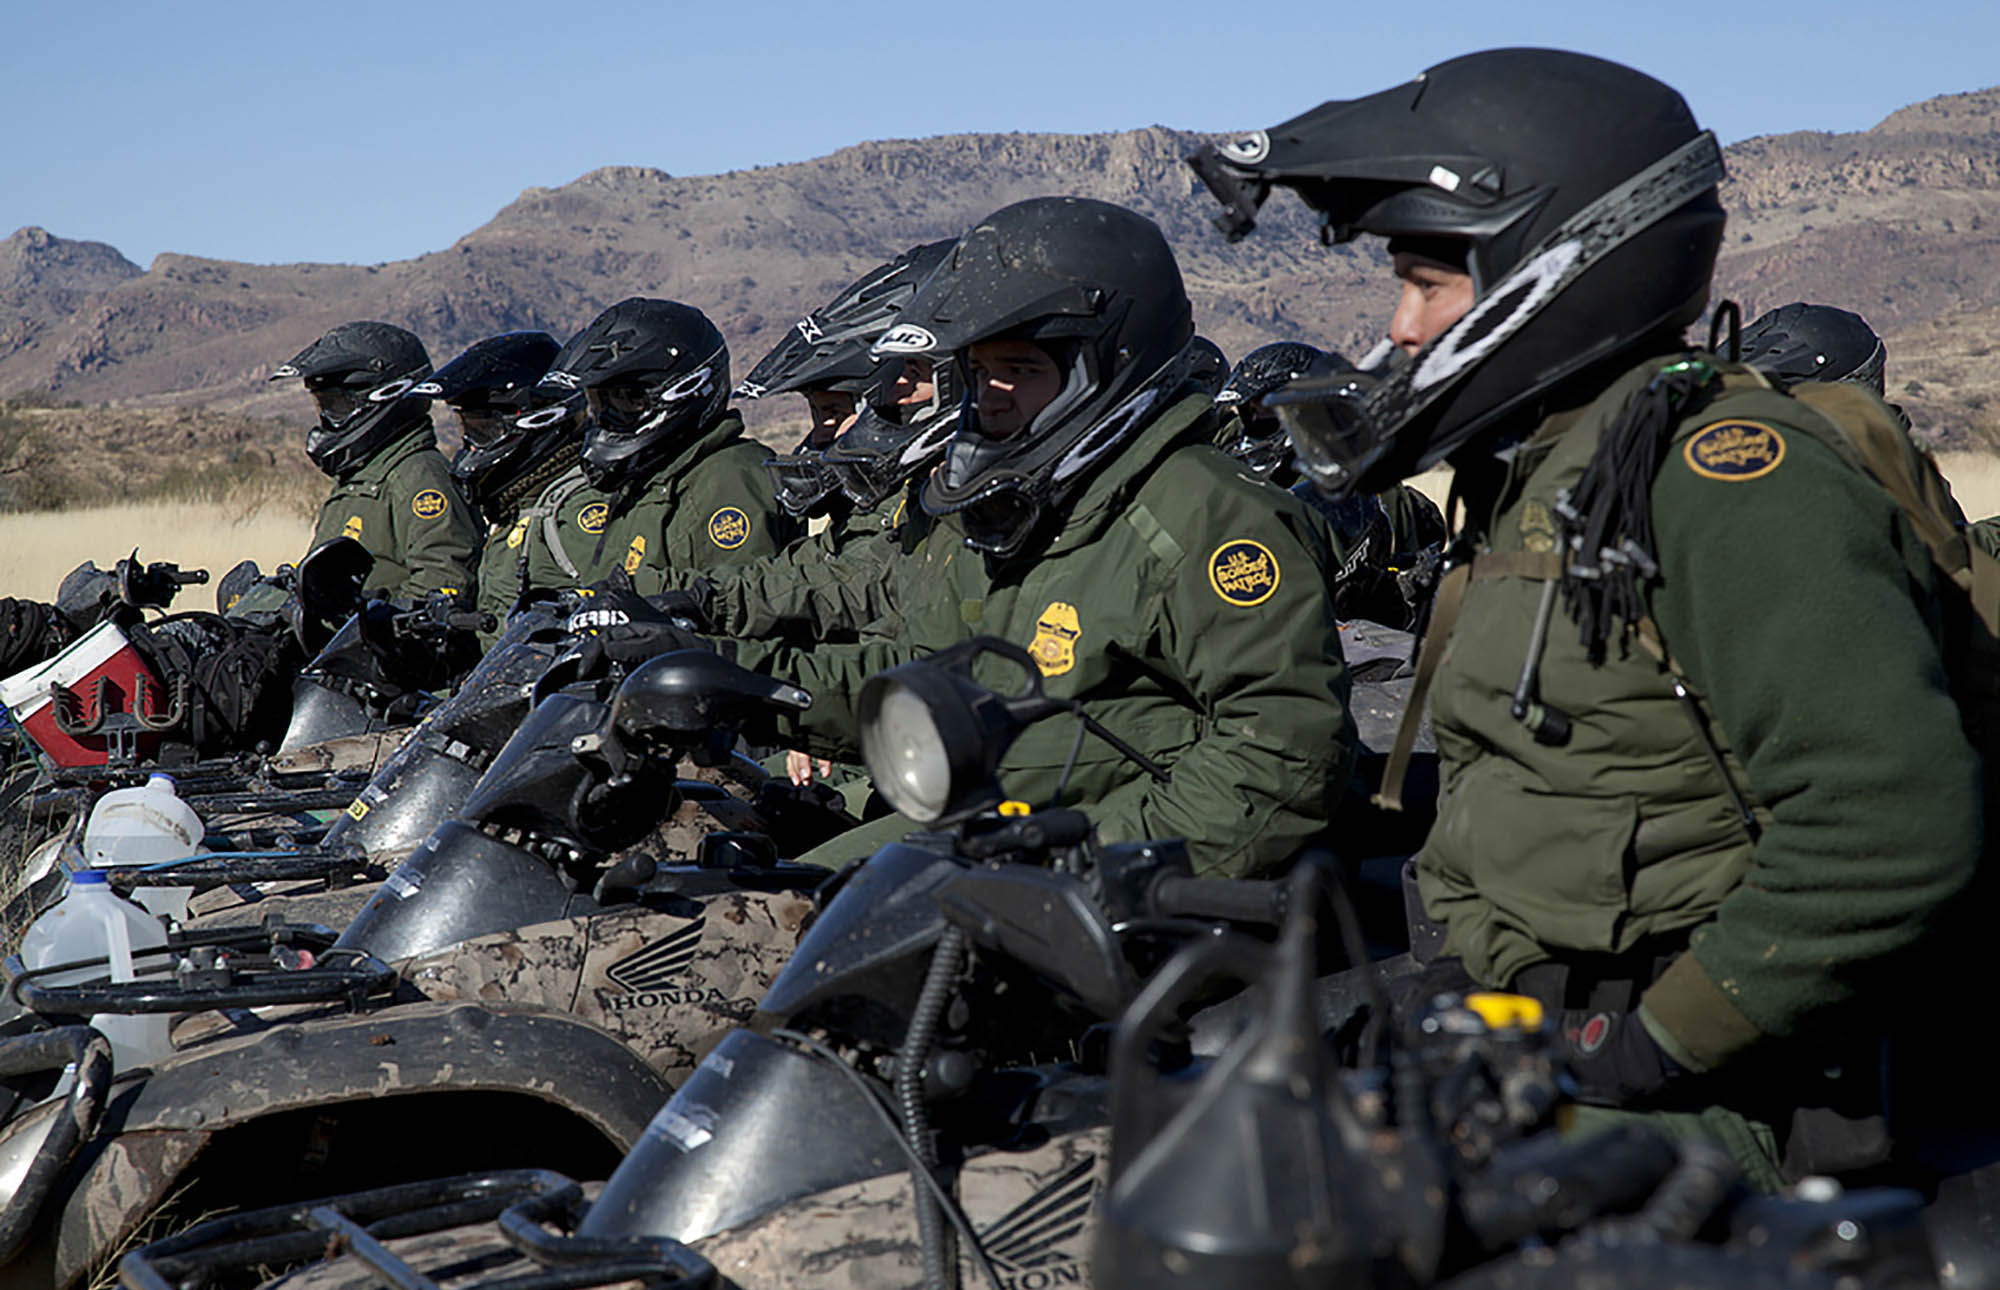 Bills to ease Border Patrol hiring advance in Senate, stall